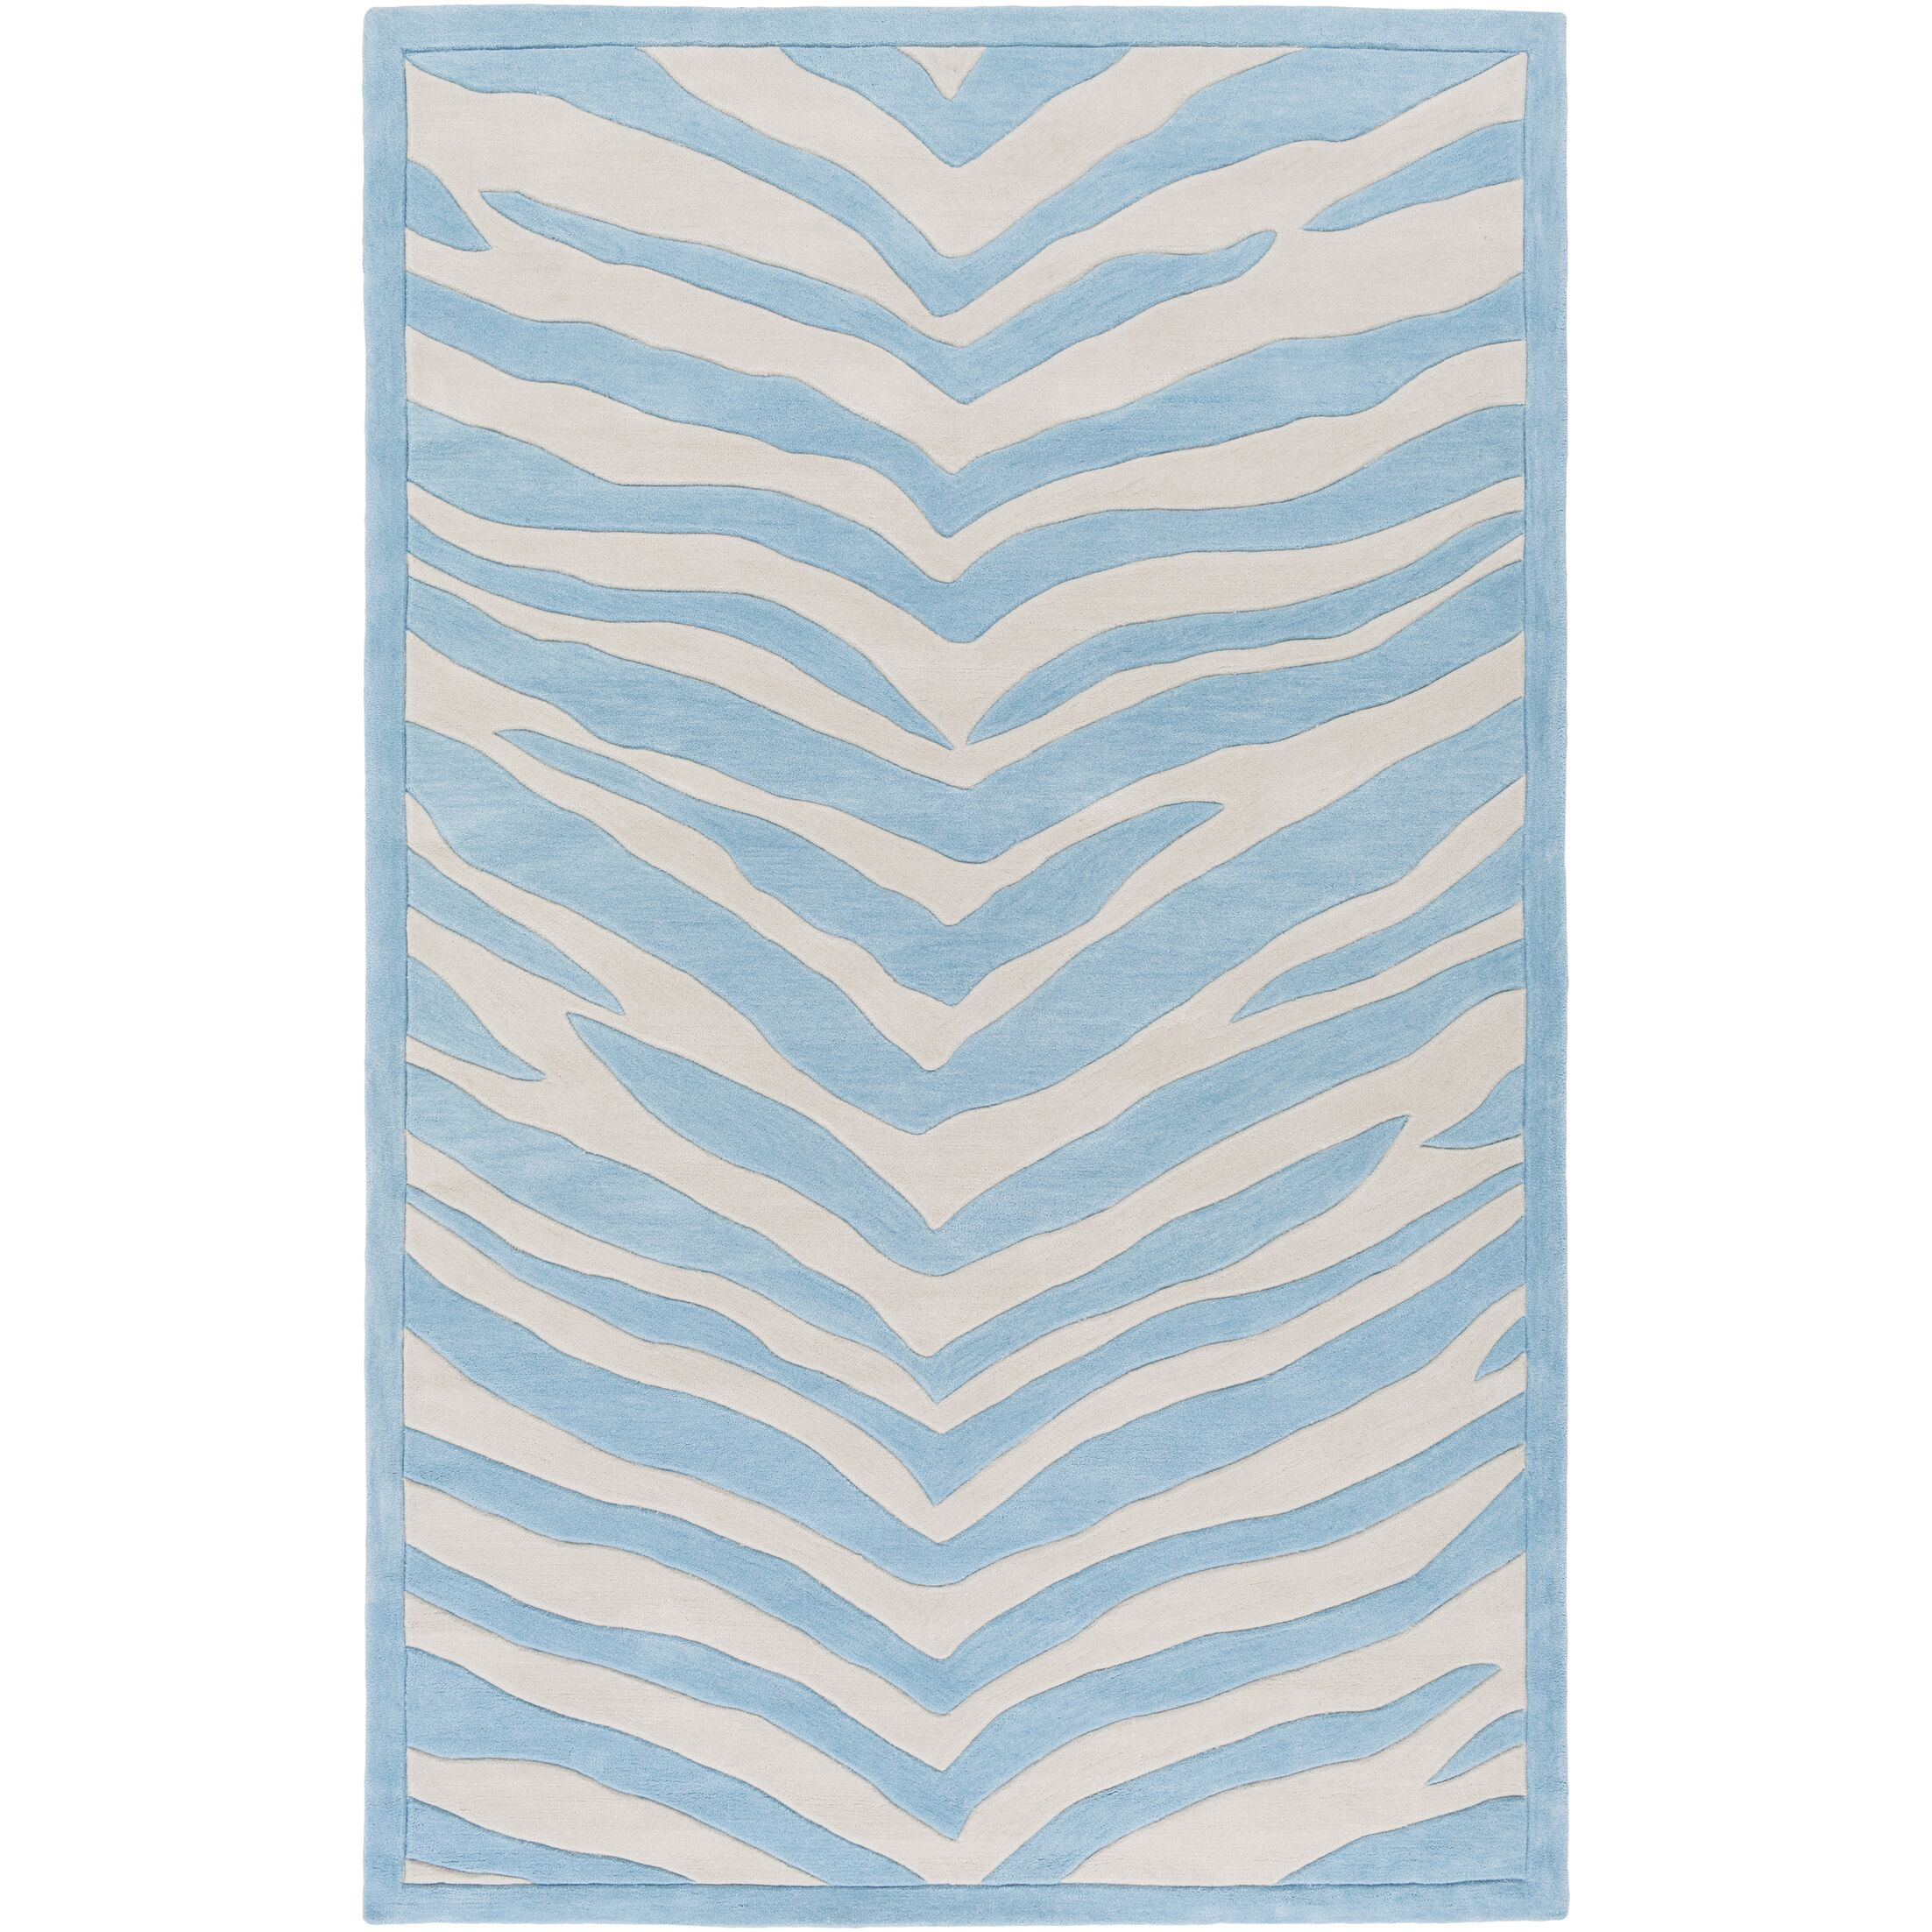 Alvin Hand-Tufted Sky Blue/Ivory Area Rug Rug Size: Rectangle 5' x 7'6